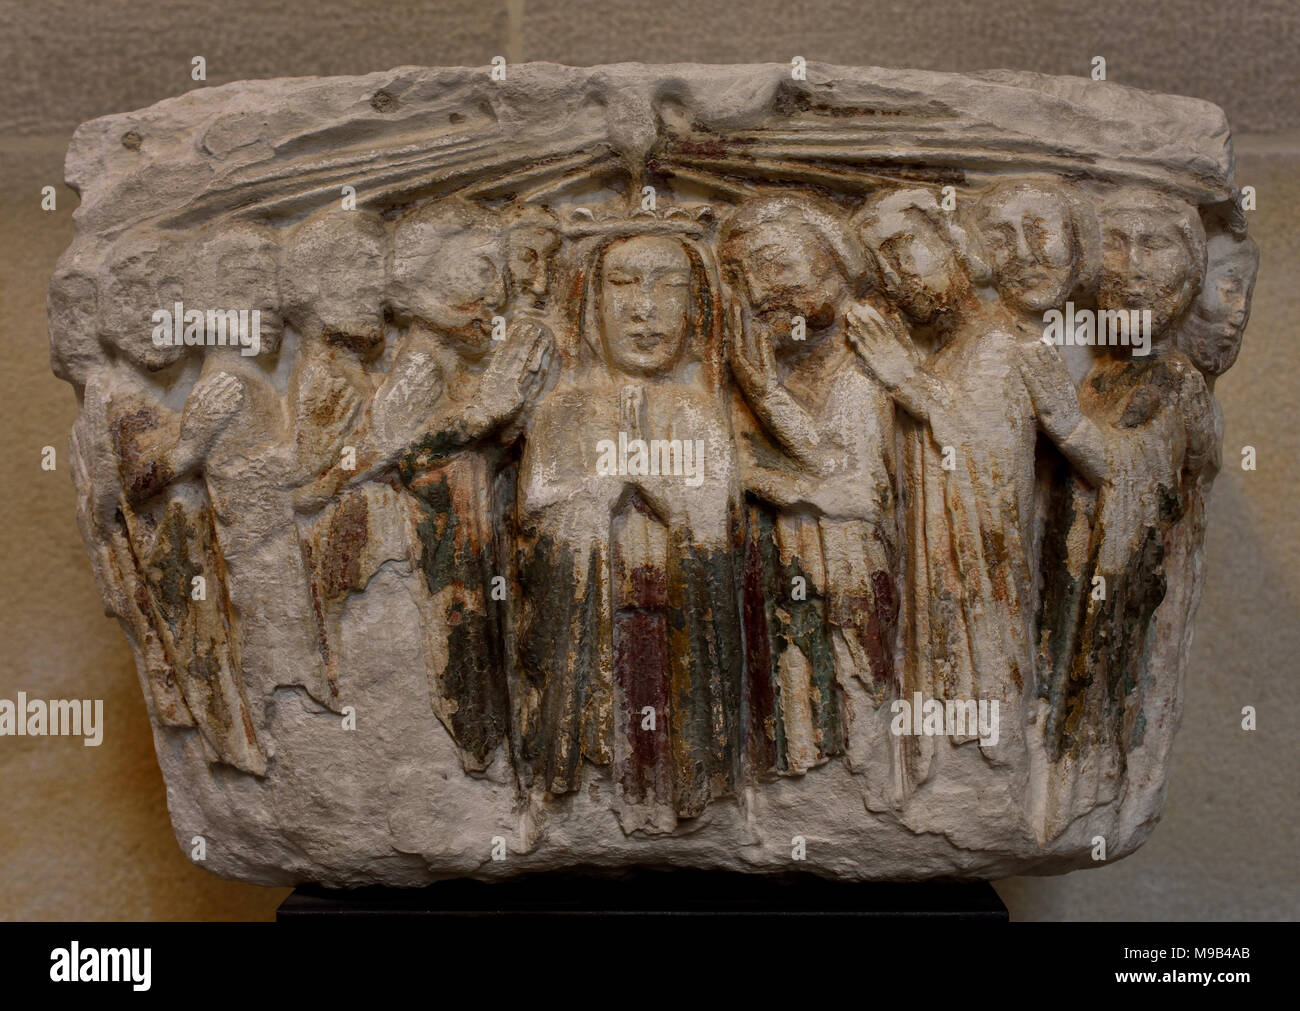 The descent of the Holy Spirit upon the Virgin and the Apostles (Pentecost Capital) 13th century Portugal, Portuguese, Coimbra ( scenes from the life of Christ, the Virgin and the Saints, ) - Stock Image